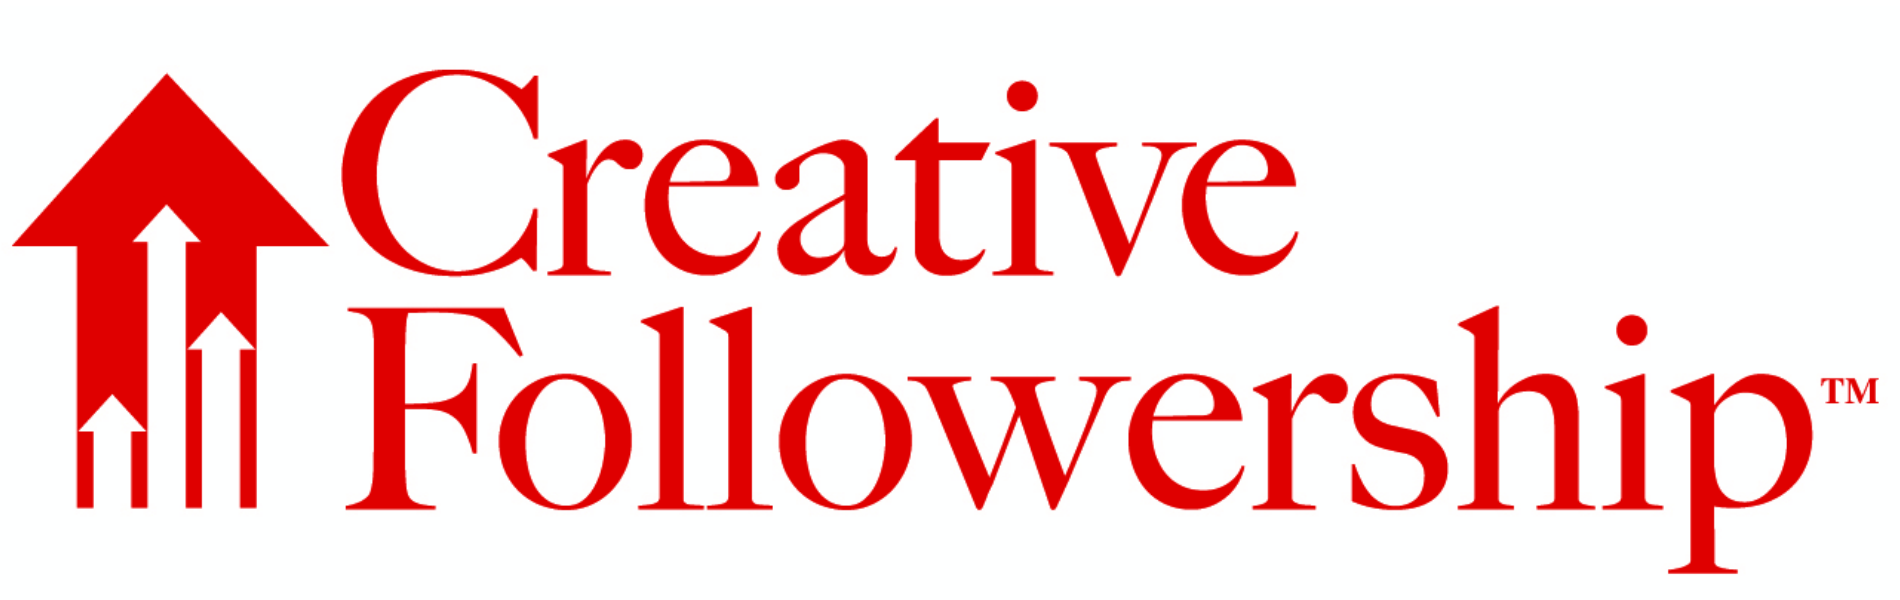 Creative Followership